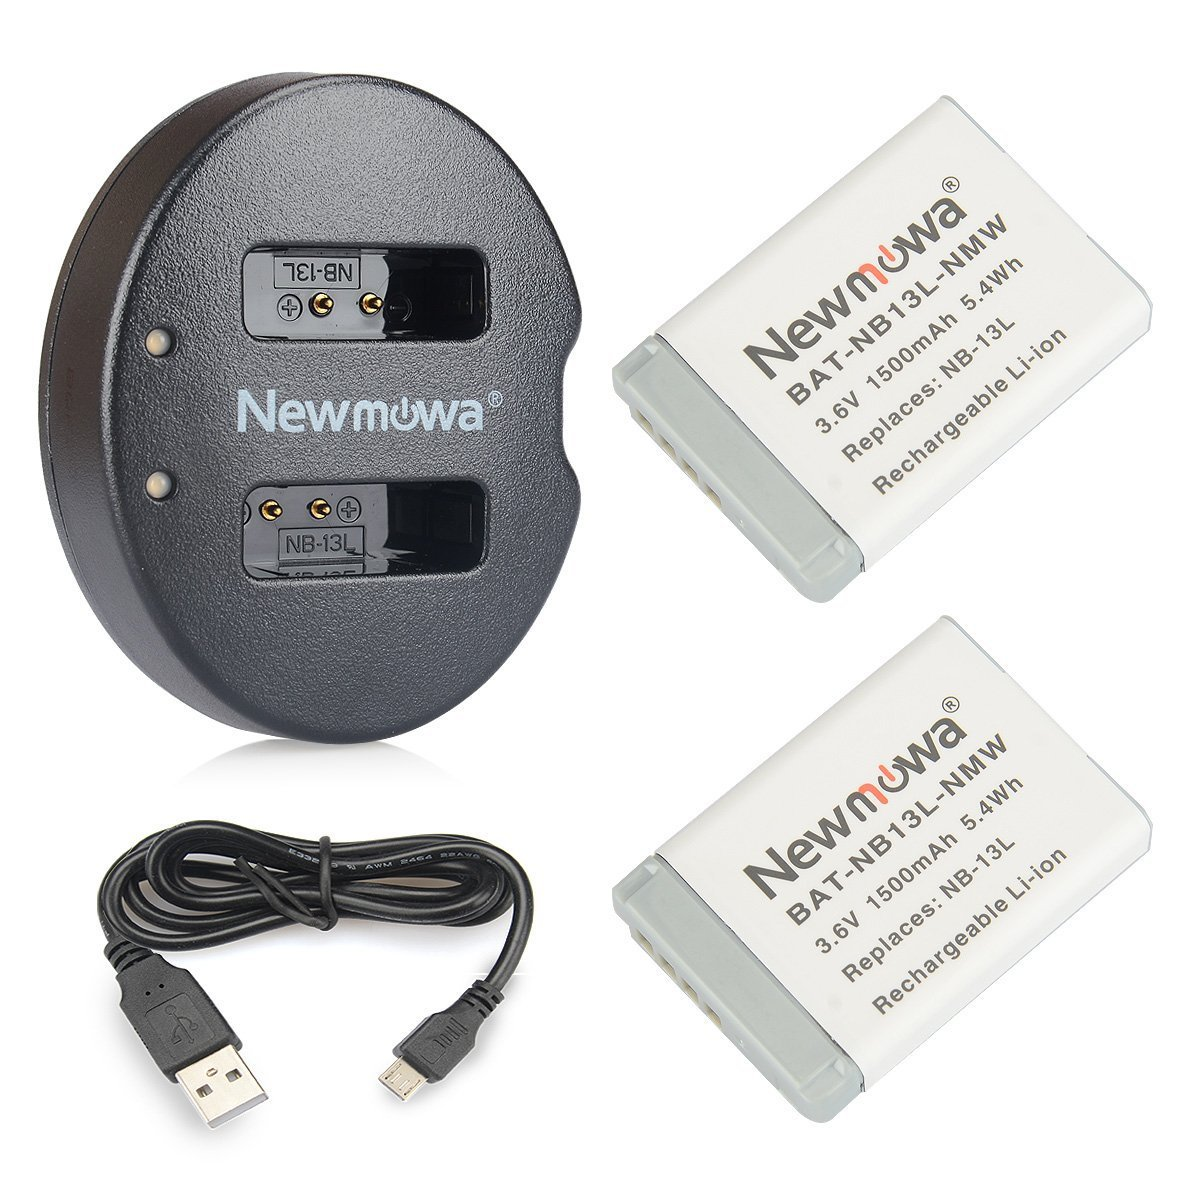 NB-13L Newmowa Battery (2 pack) and Dual USB Charger for Canon NB-13L and PowerShot G5X, G7X, G7 X Mark II, G9X, G9 X Mark II, G1 X Mark III, SX620 HS, SX720 HS, SX730 HS